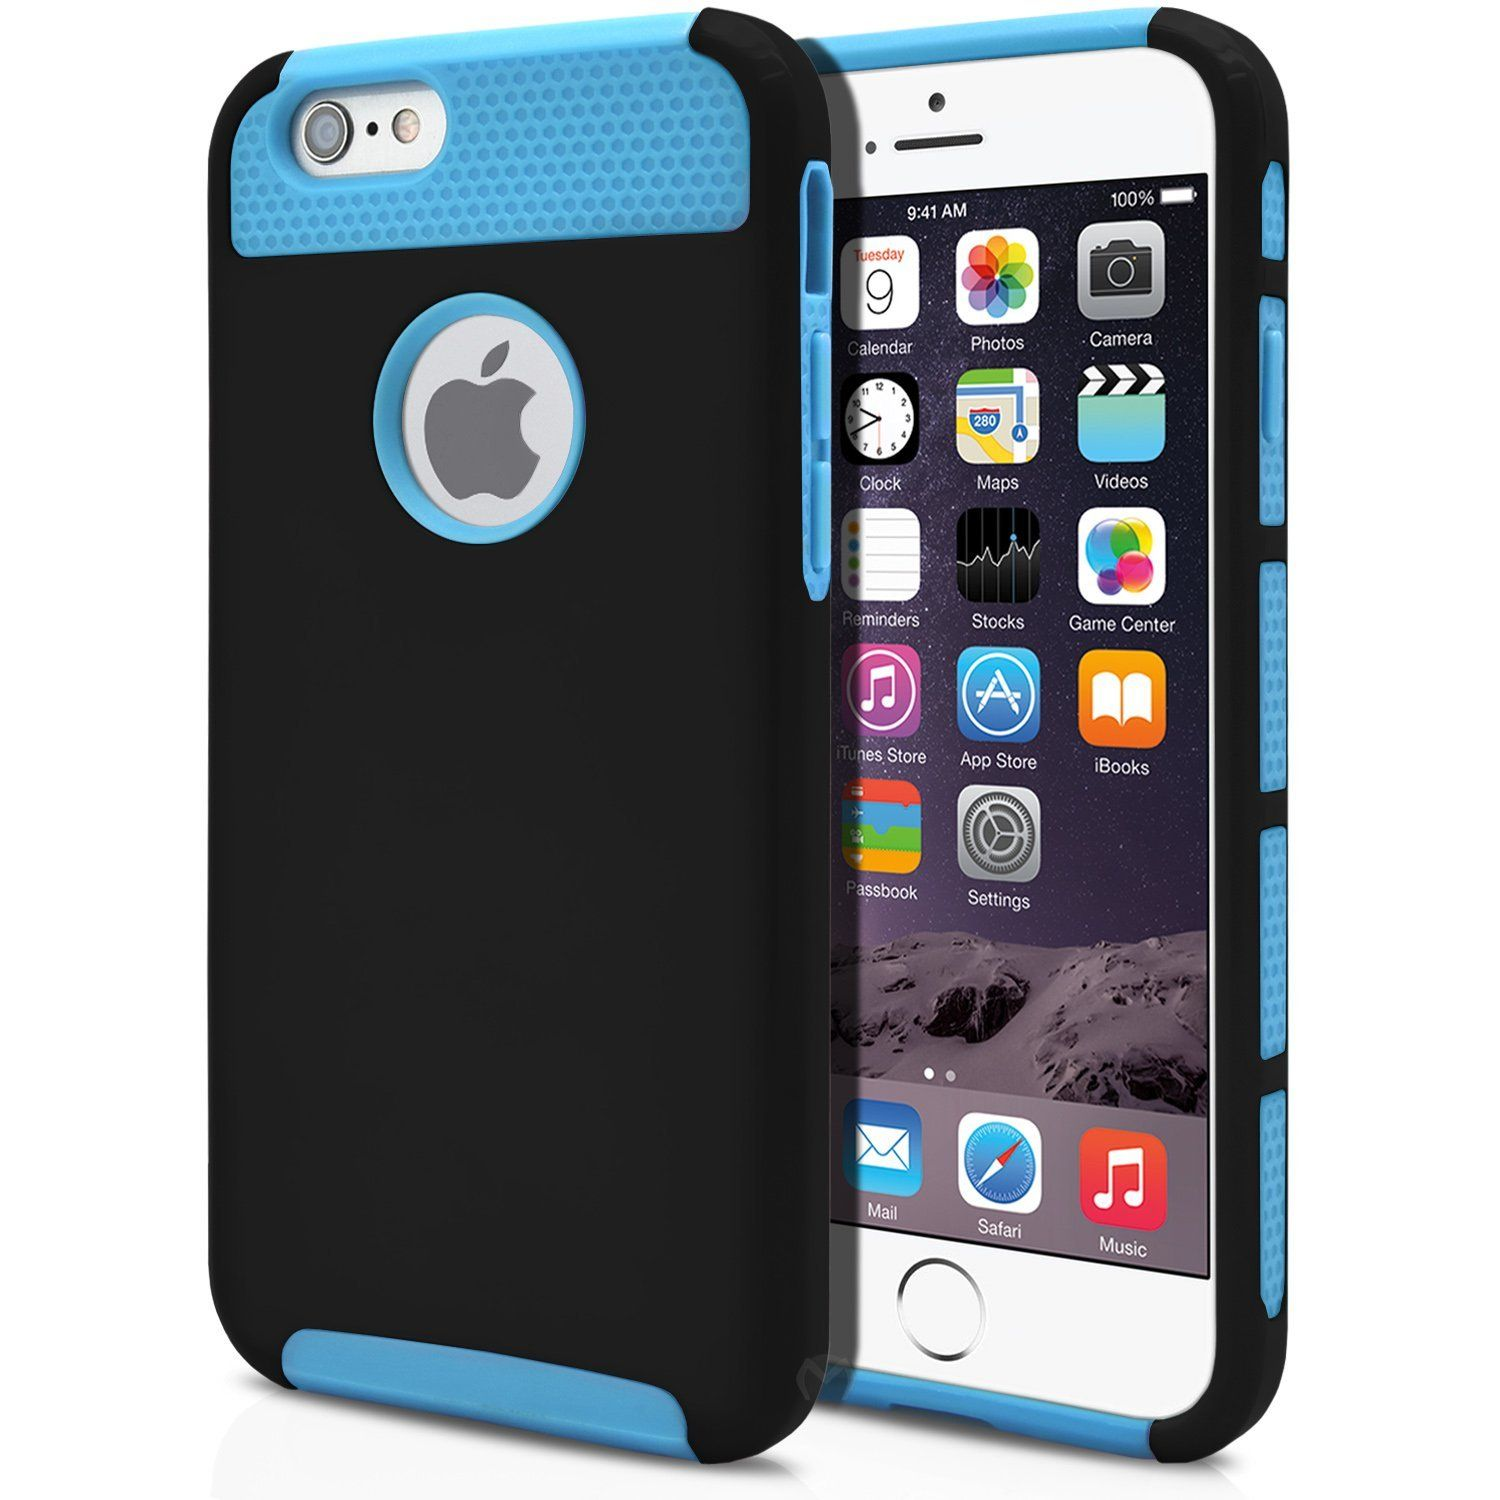 iPhone 6 Case Cute Protective Hard Shockproof [Drop